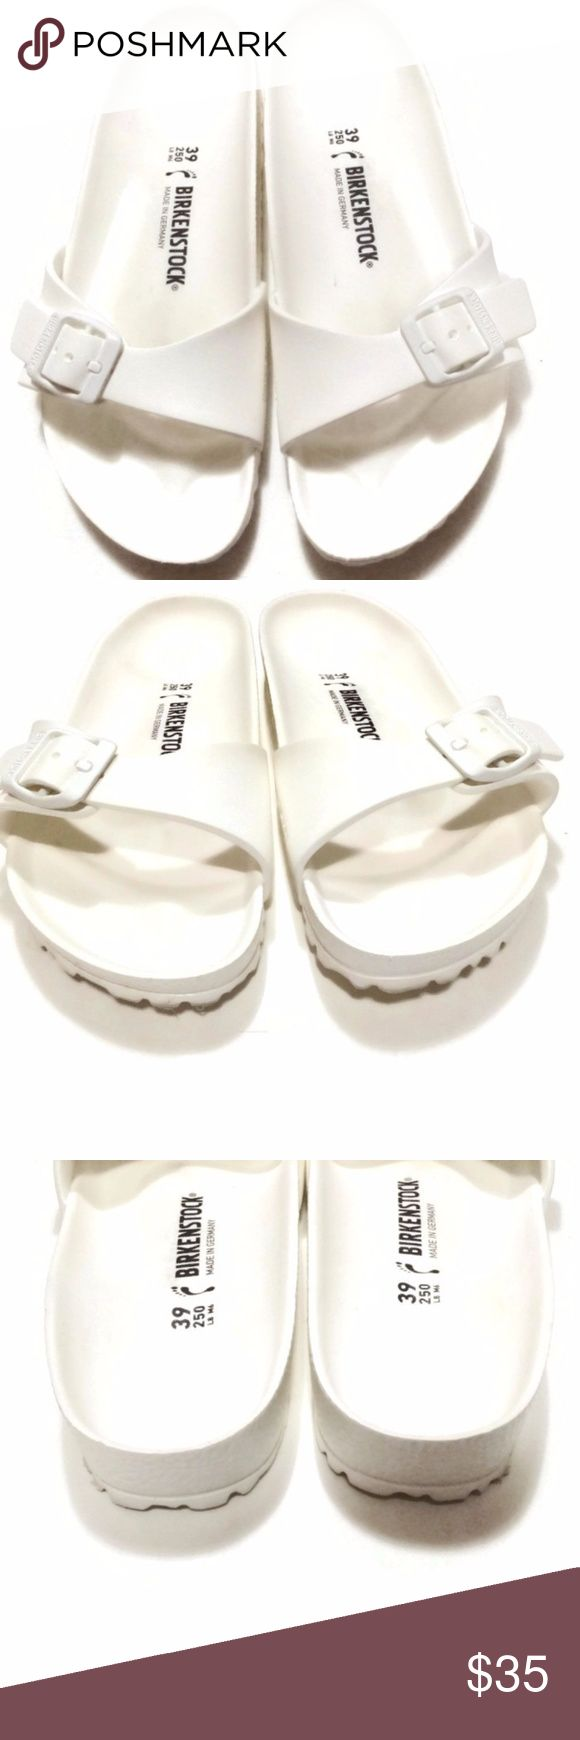 Birkenstock White Rubber Sandals Flip Flop Sz 39 9 In overall excellent condition. Some wear on insoles and soles. Narrow width.  All items are 100% authentic, I do not sell fakes. Birkenstock Shoes Sandals